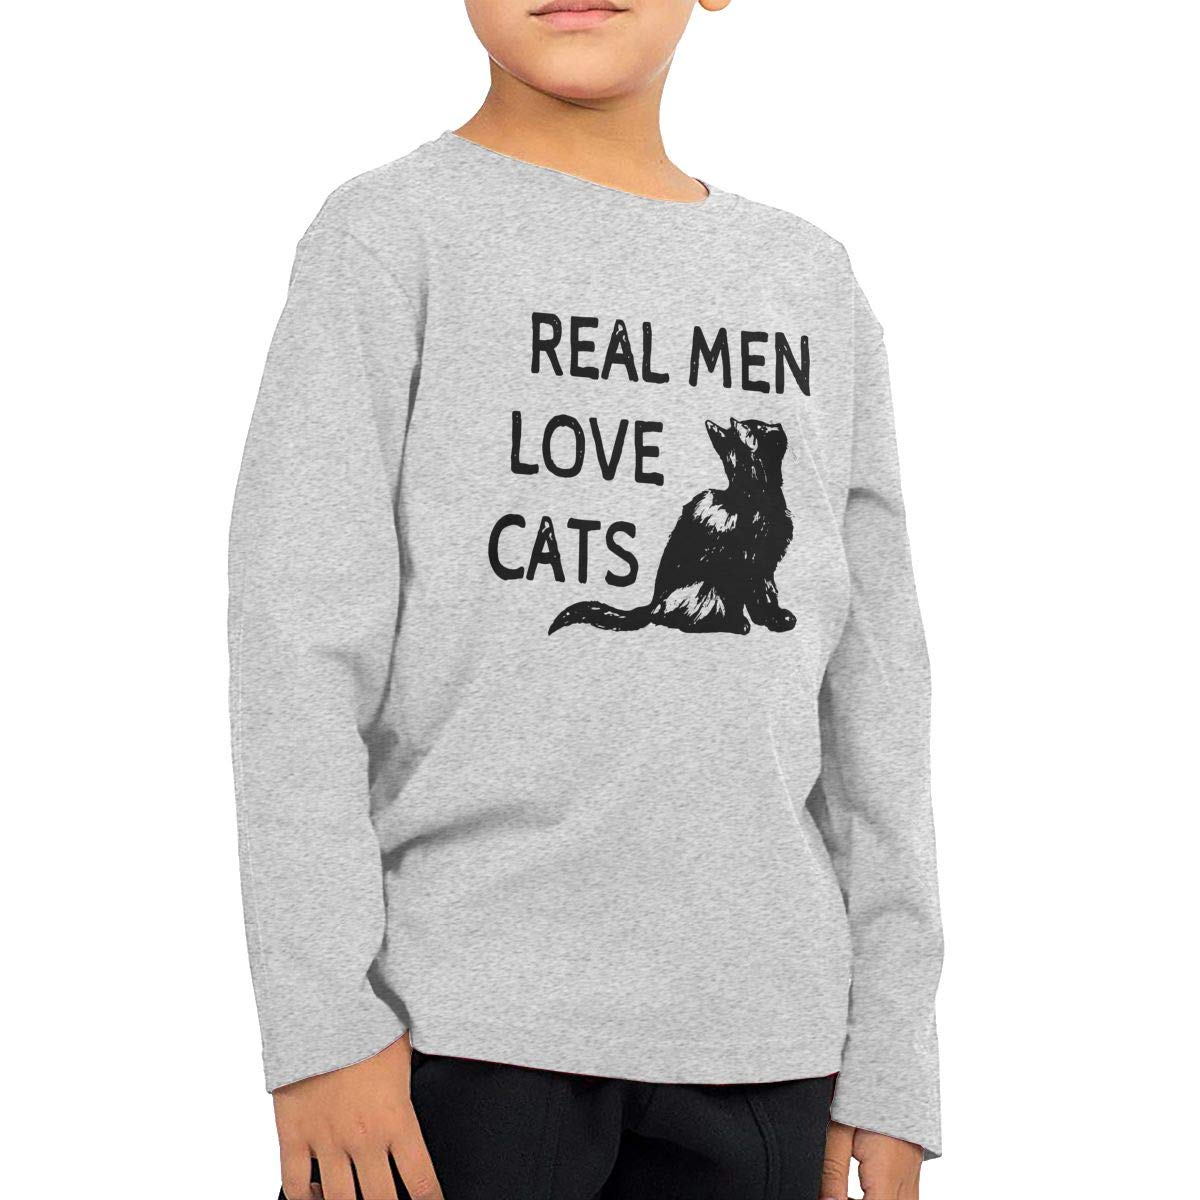 Real Men Love Cats Childrens Gray Cotton Long Sleeve Round Neck T Shirt for Boy Or Girl